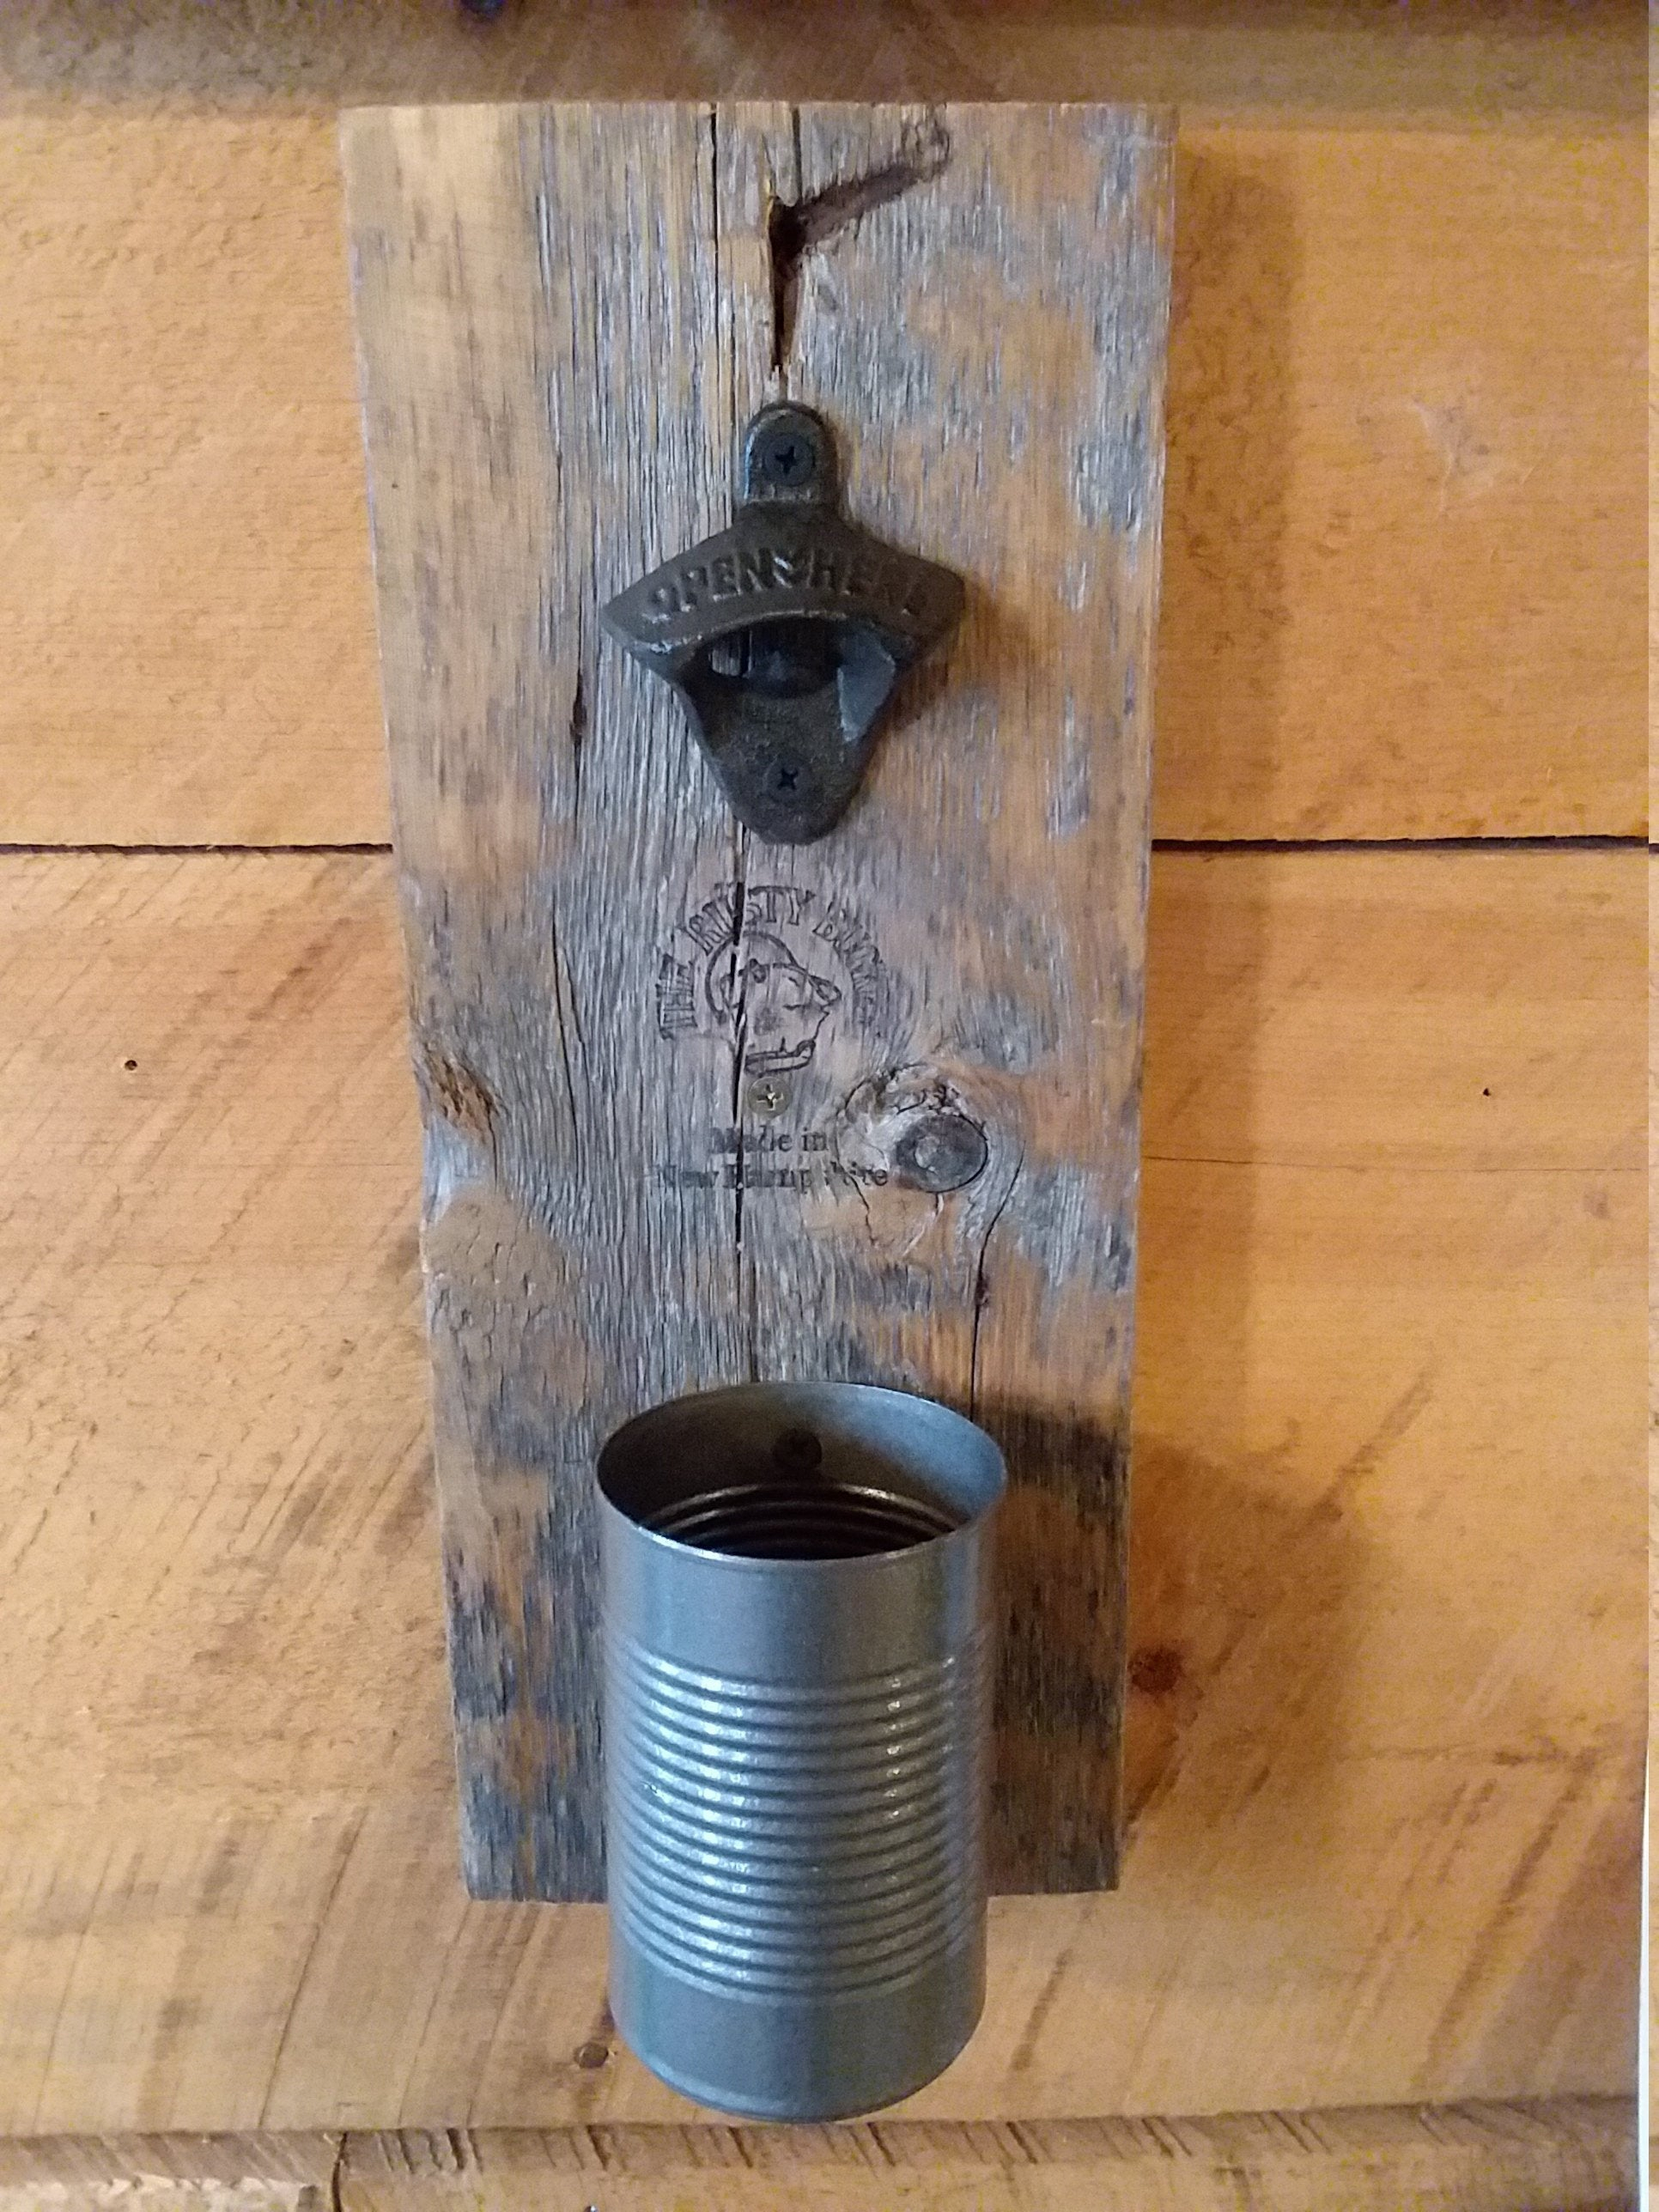 2020 Farm Metal Wall Rack And 3 Tin Pot With Hanger Wall Decor Regarding Gift For Him! Rustic Wall Hanging Barn Board Beer Bottle Cap Opener (Gallery 20 of 20)